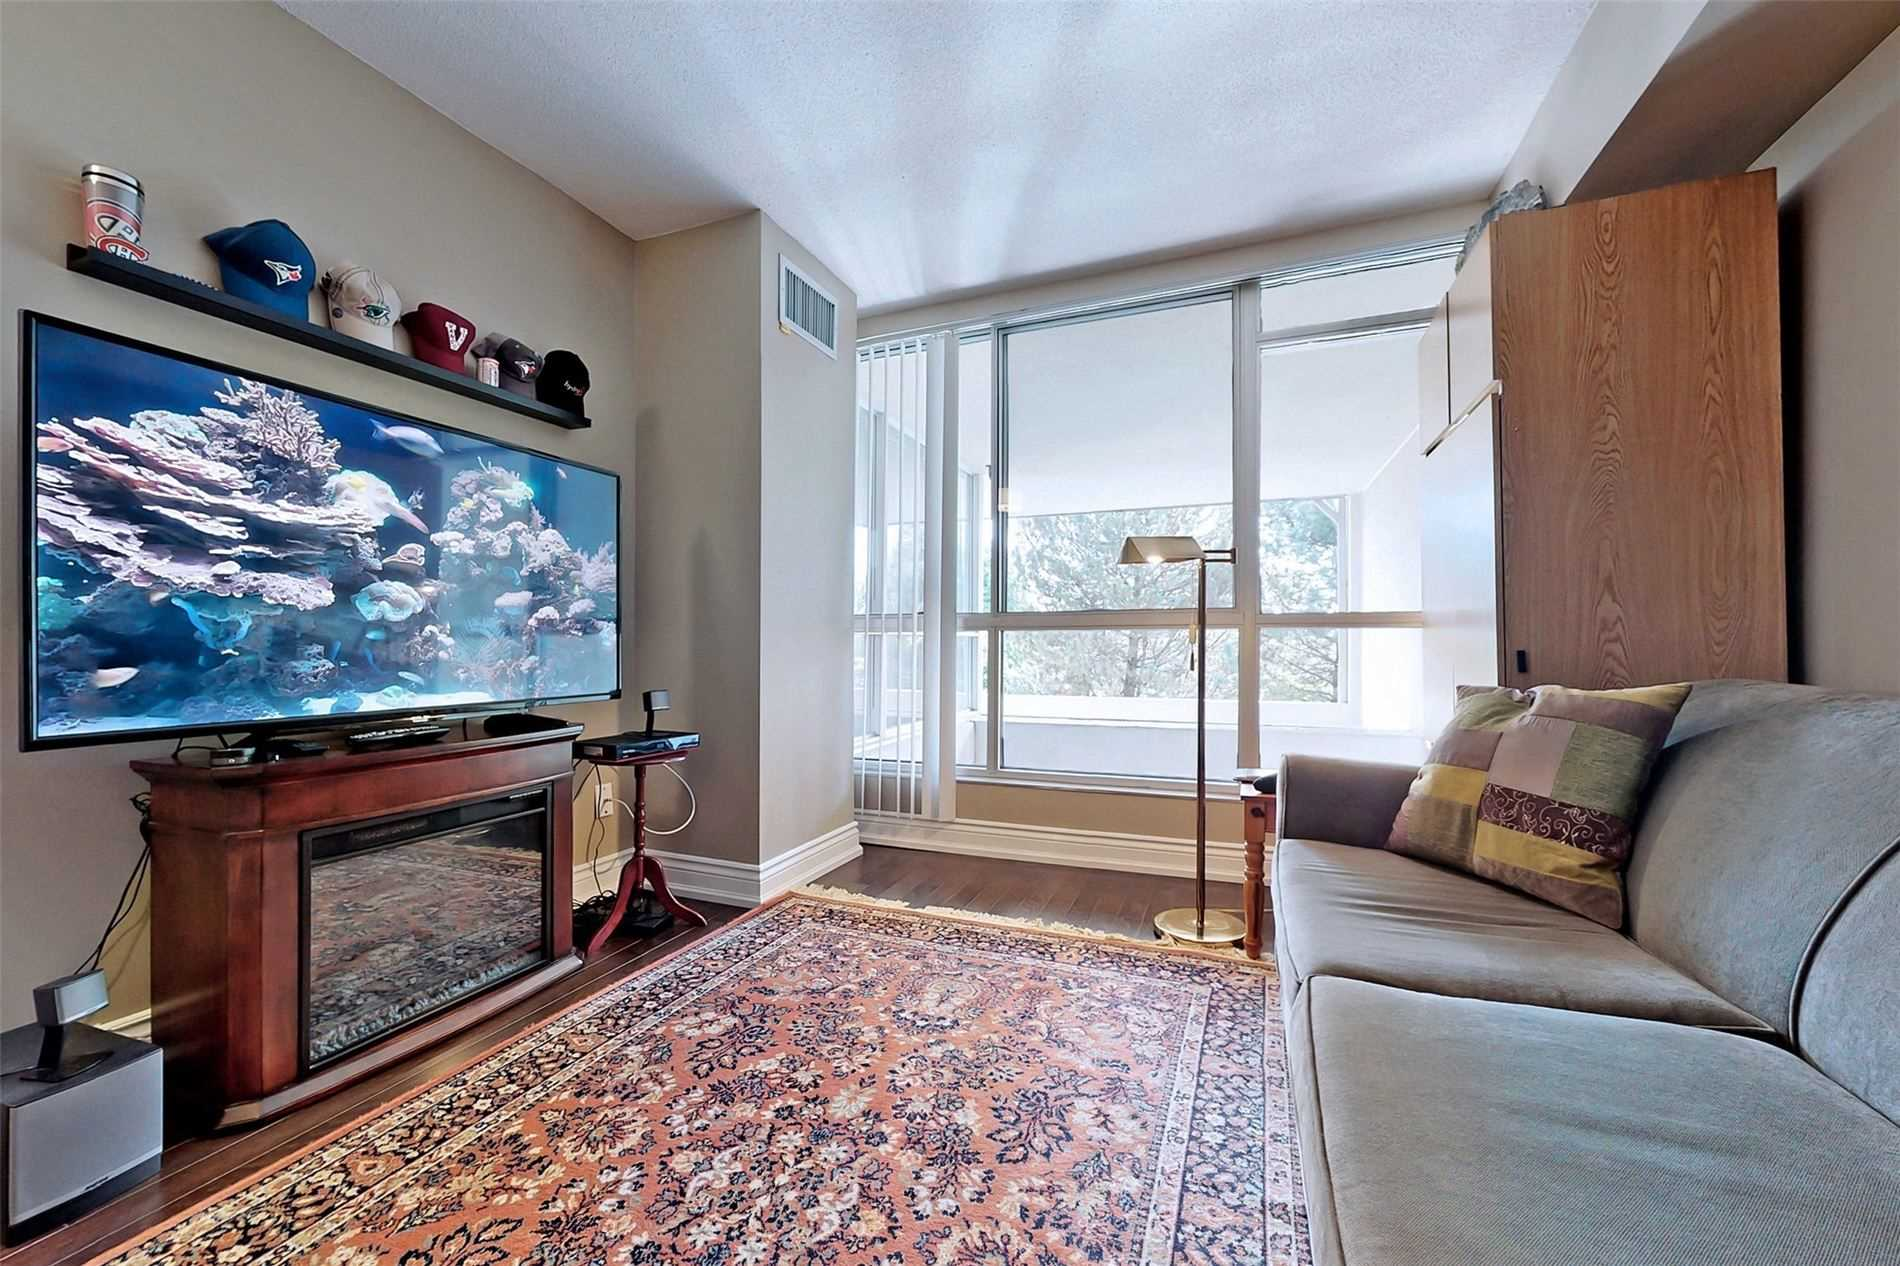 Image 16 of 40 showing inside of 2 Bedroom Condo Apt 2-Storey for Sale at 25 Cumberland Lane Unit# 105, Ajax L1S7K1